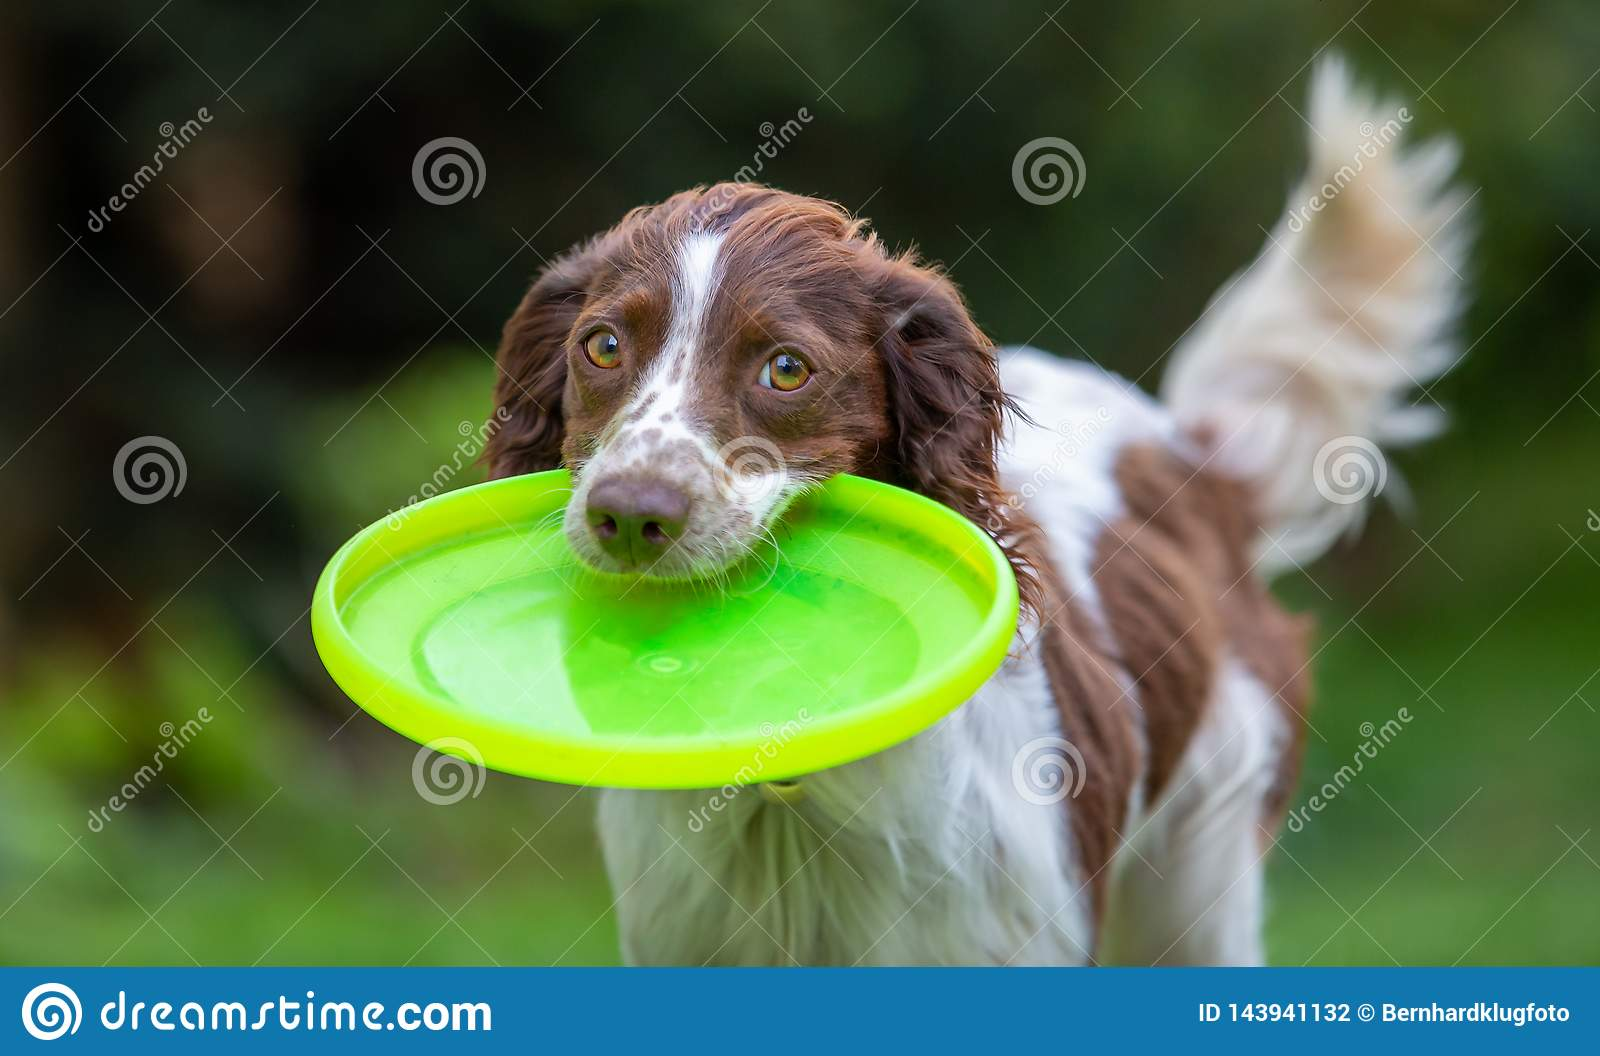 Cute little English Springer Spaniel with wagging tail fetching a yellow flying disc